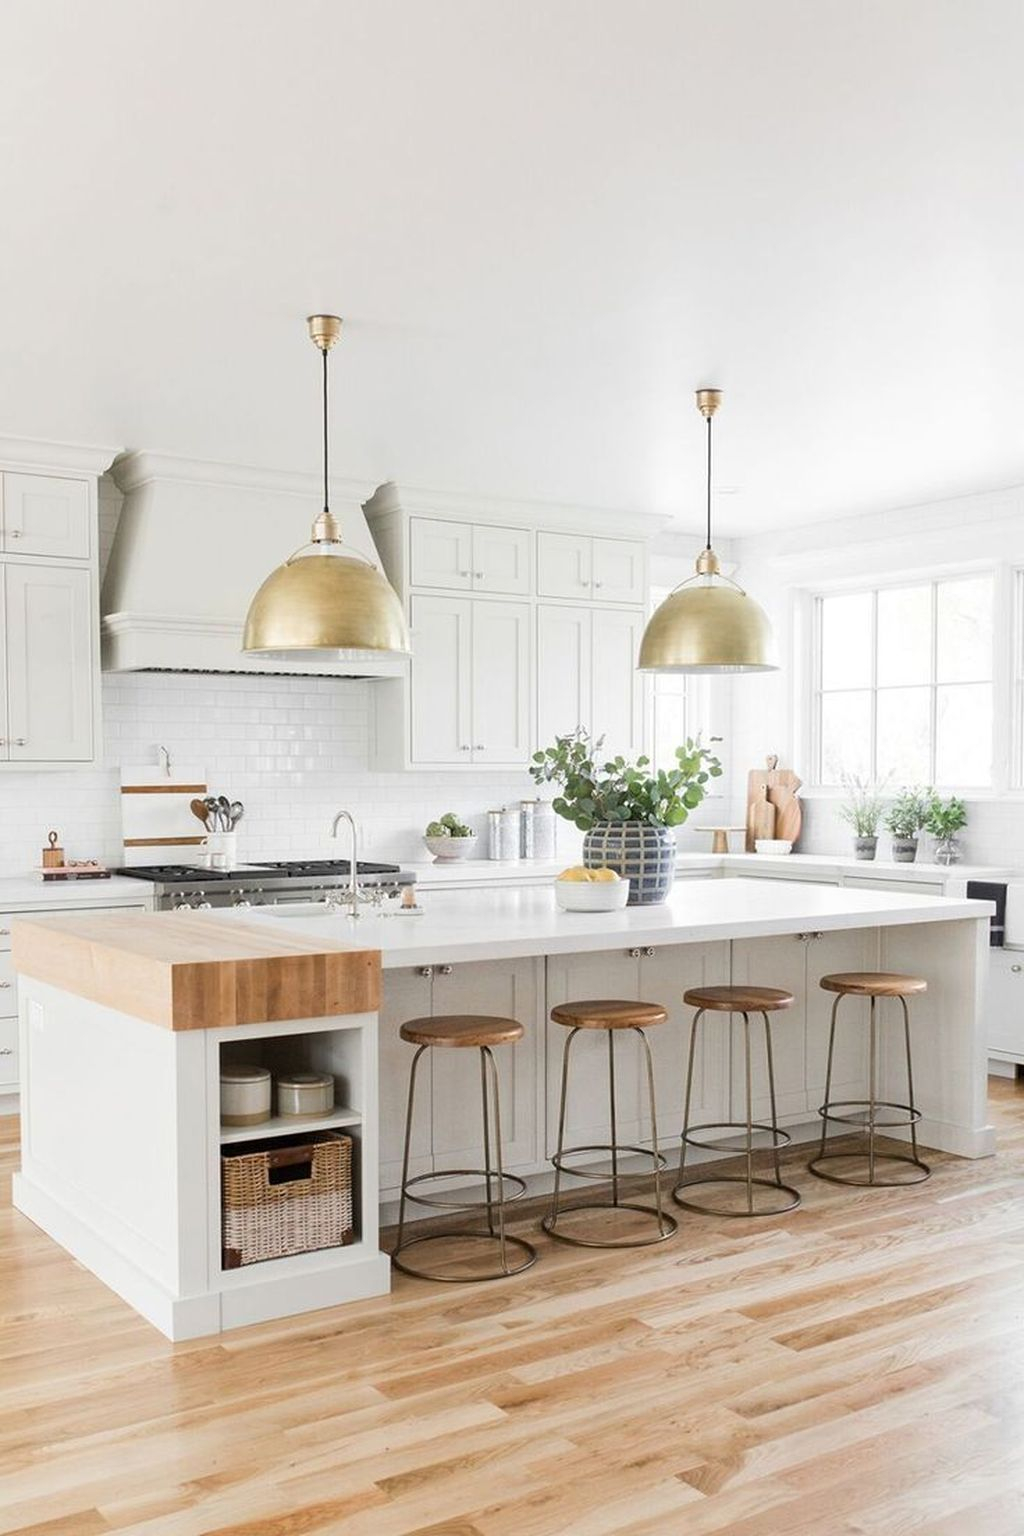 Superb Kitchen Design Ideas That You Can Try 20